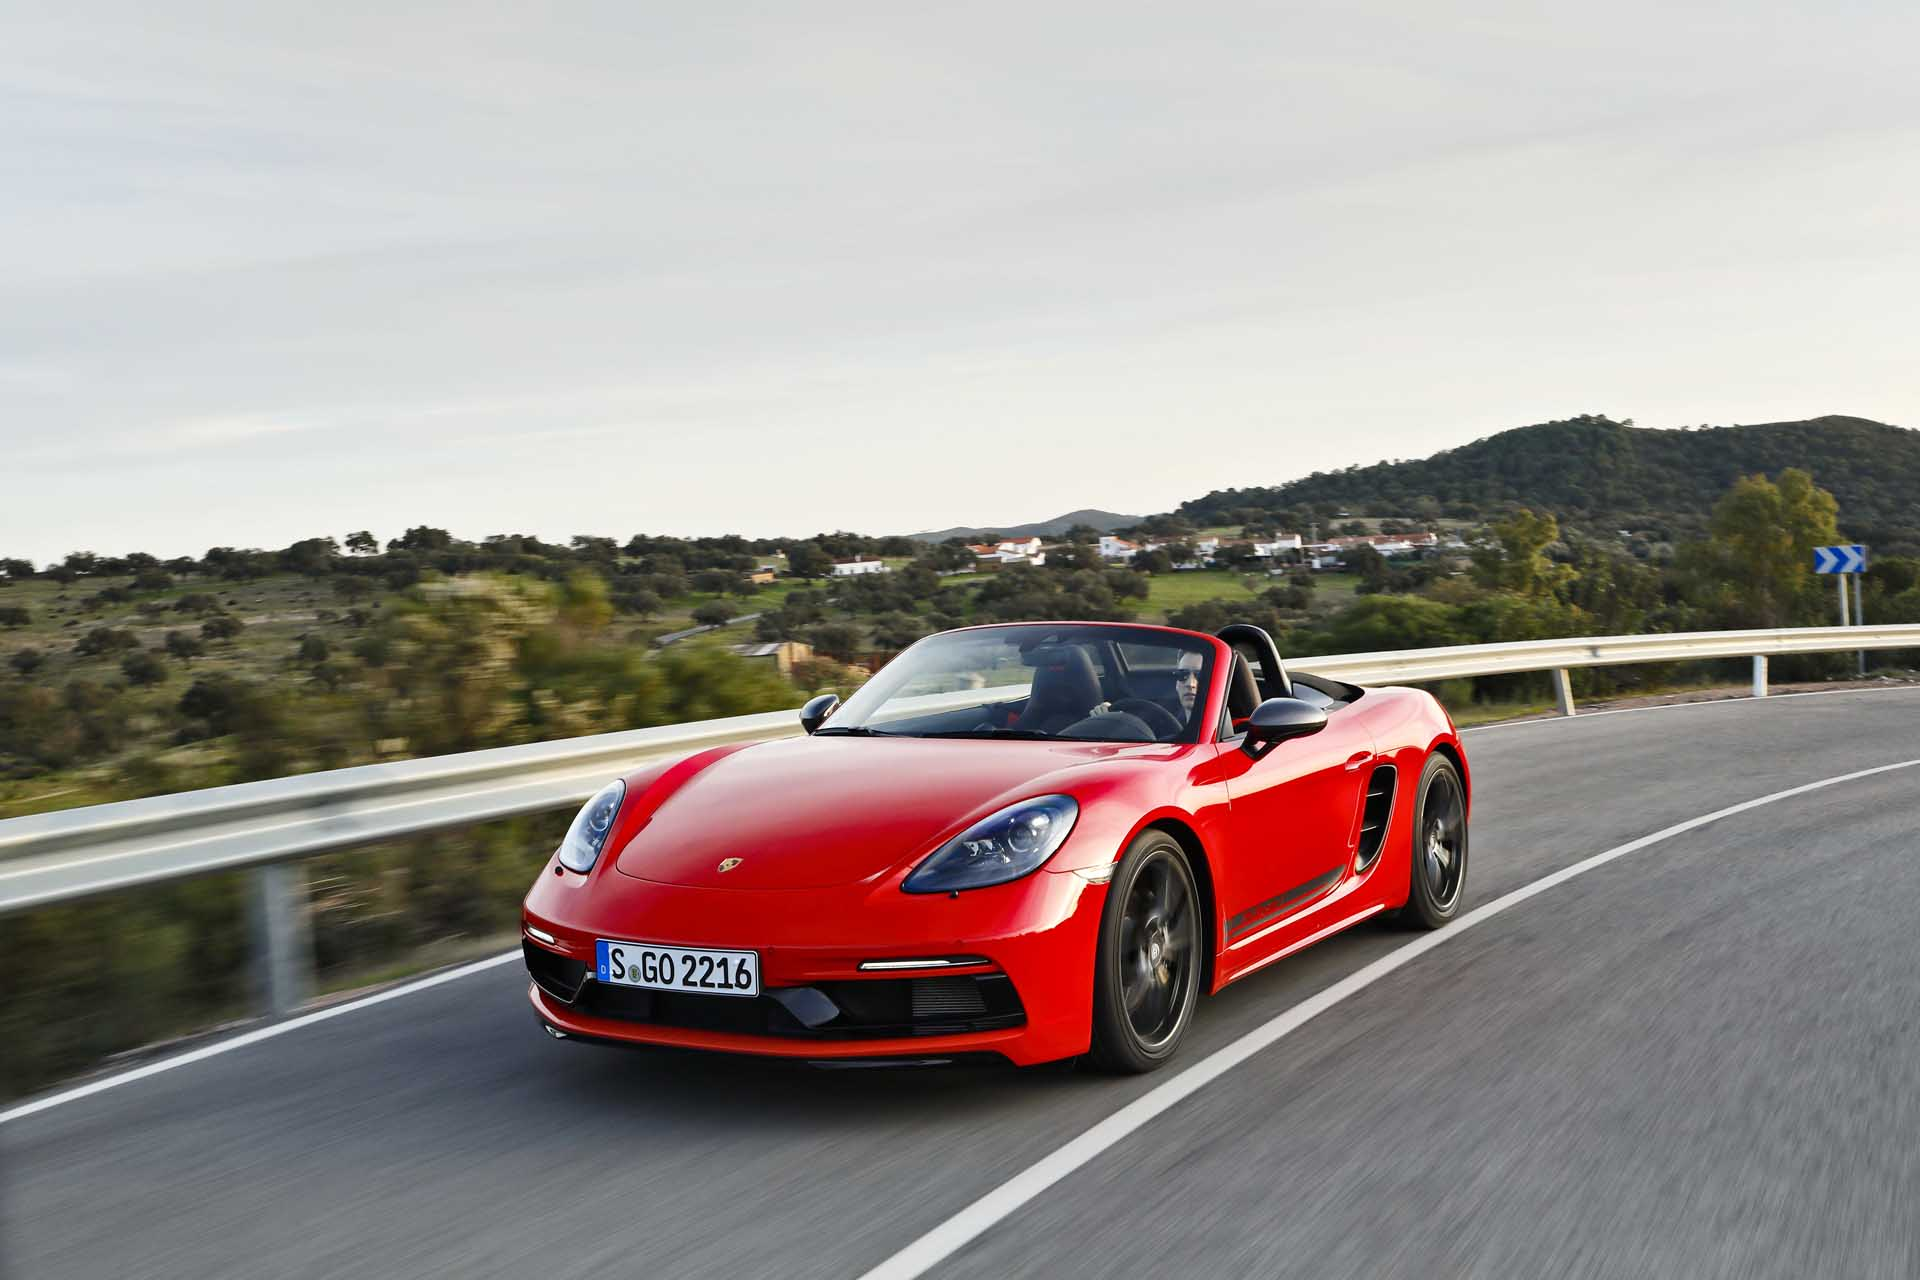 2020 Porsche 718 Boxster T And 718 Cayman T Add Value But Not Power